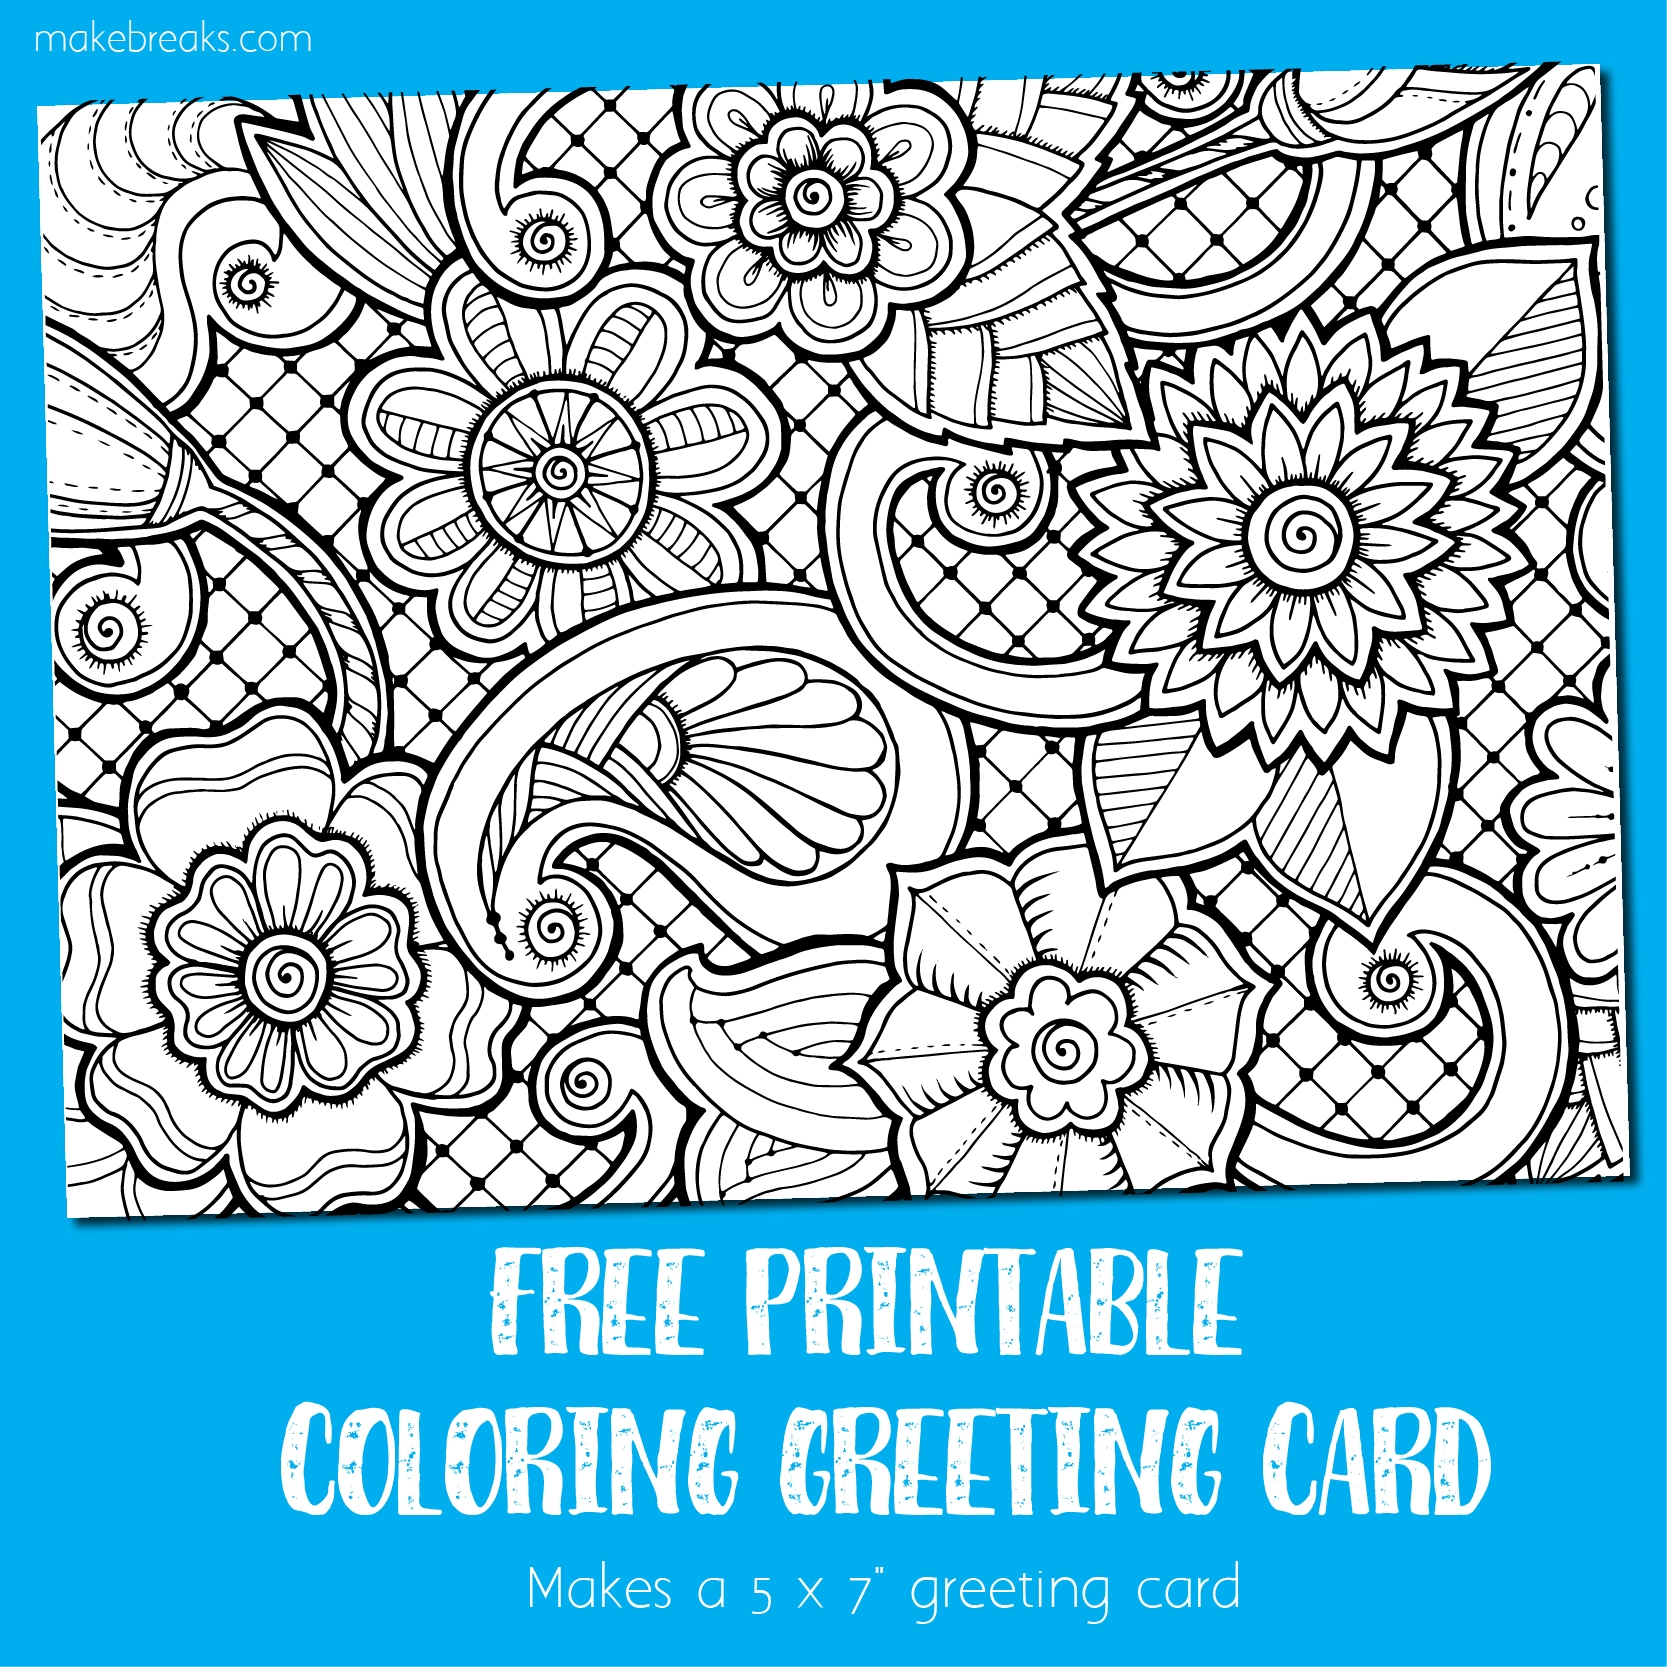 felt coloring pages - coloringcard1